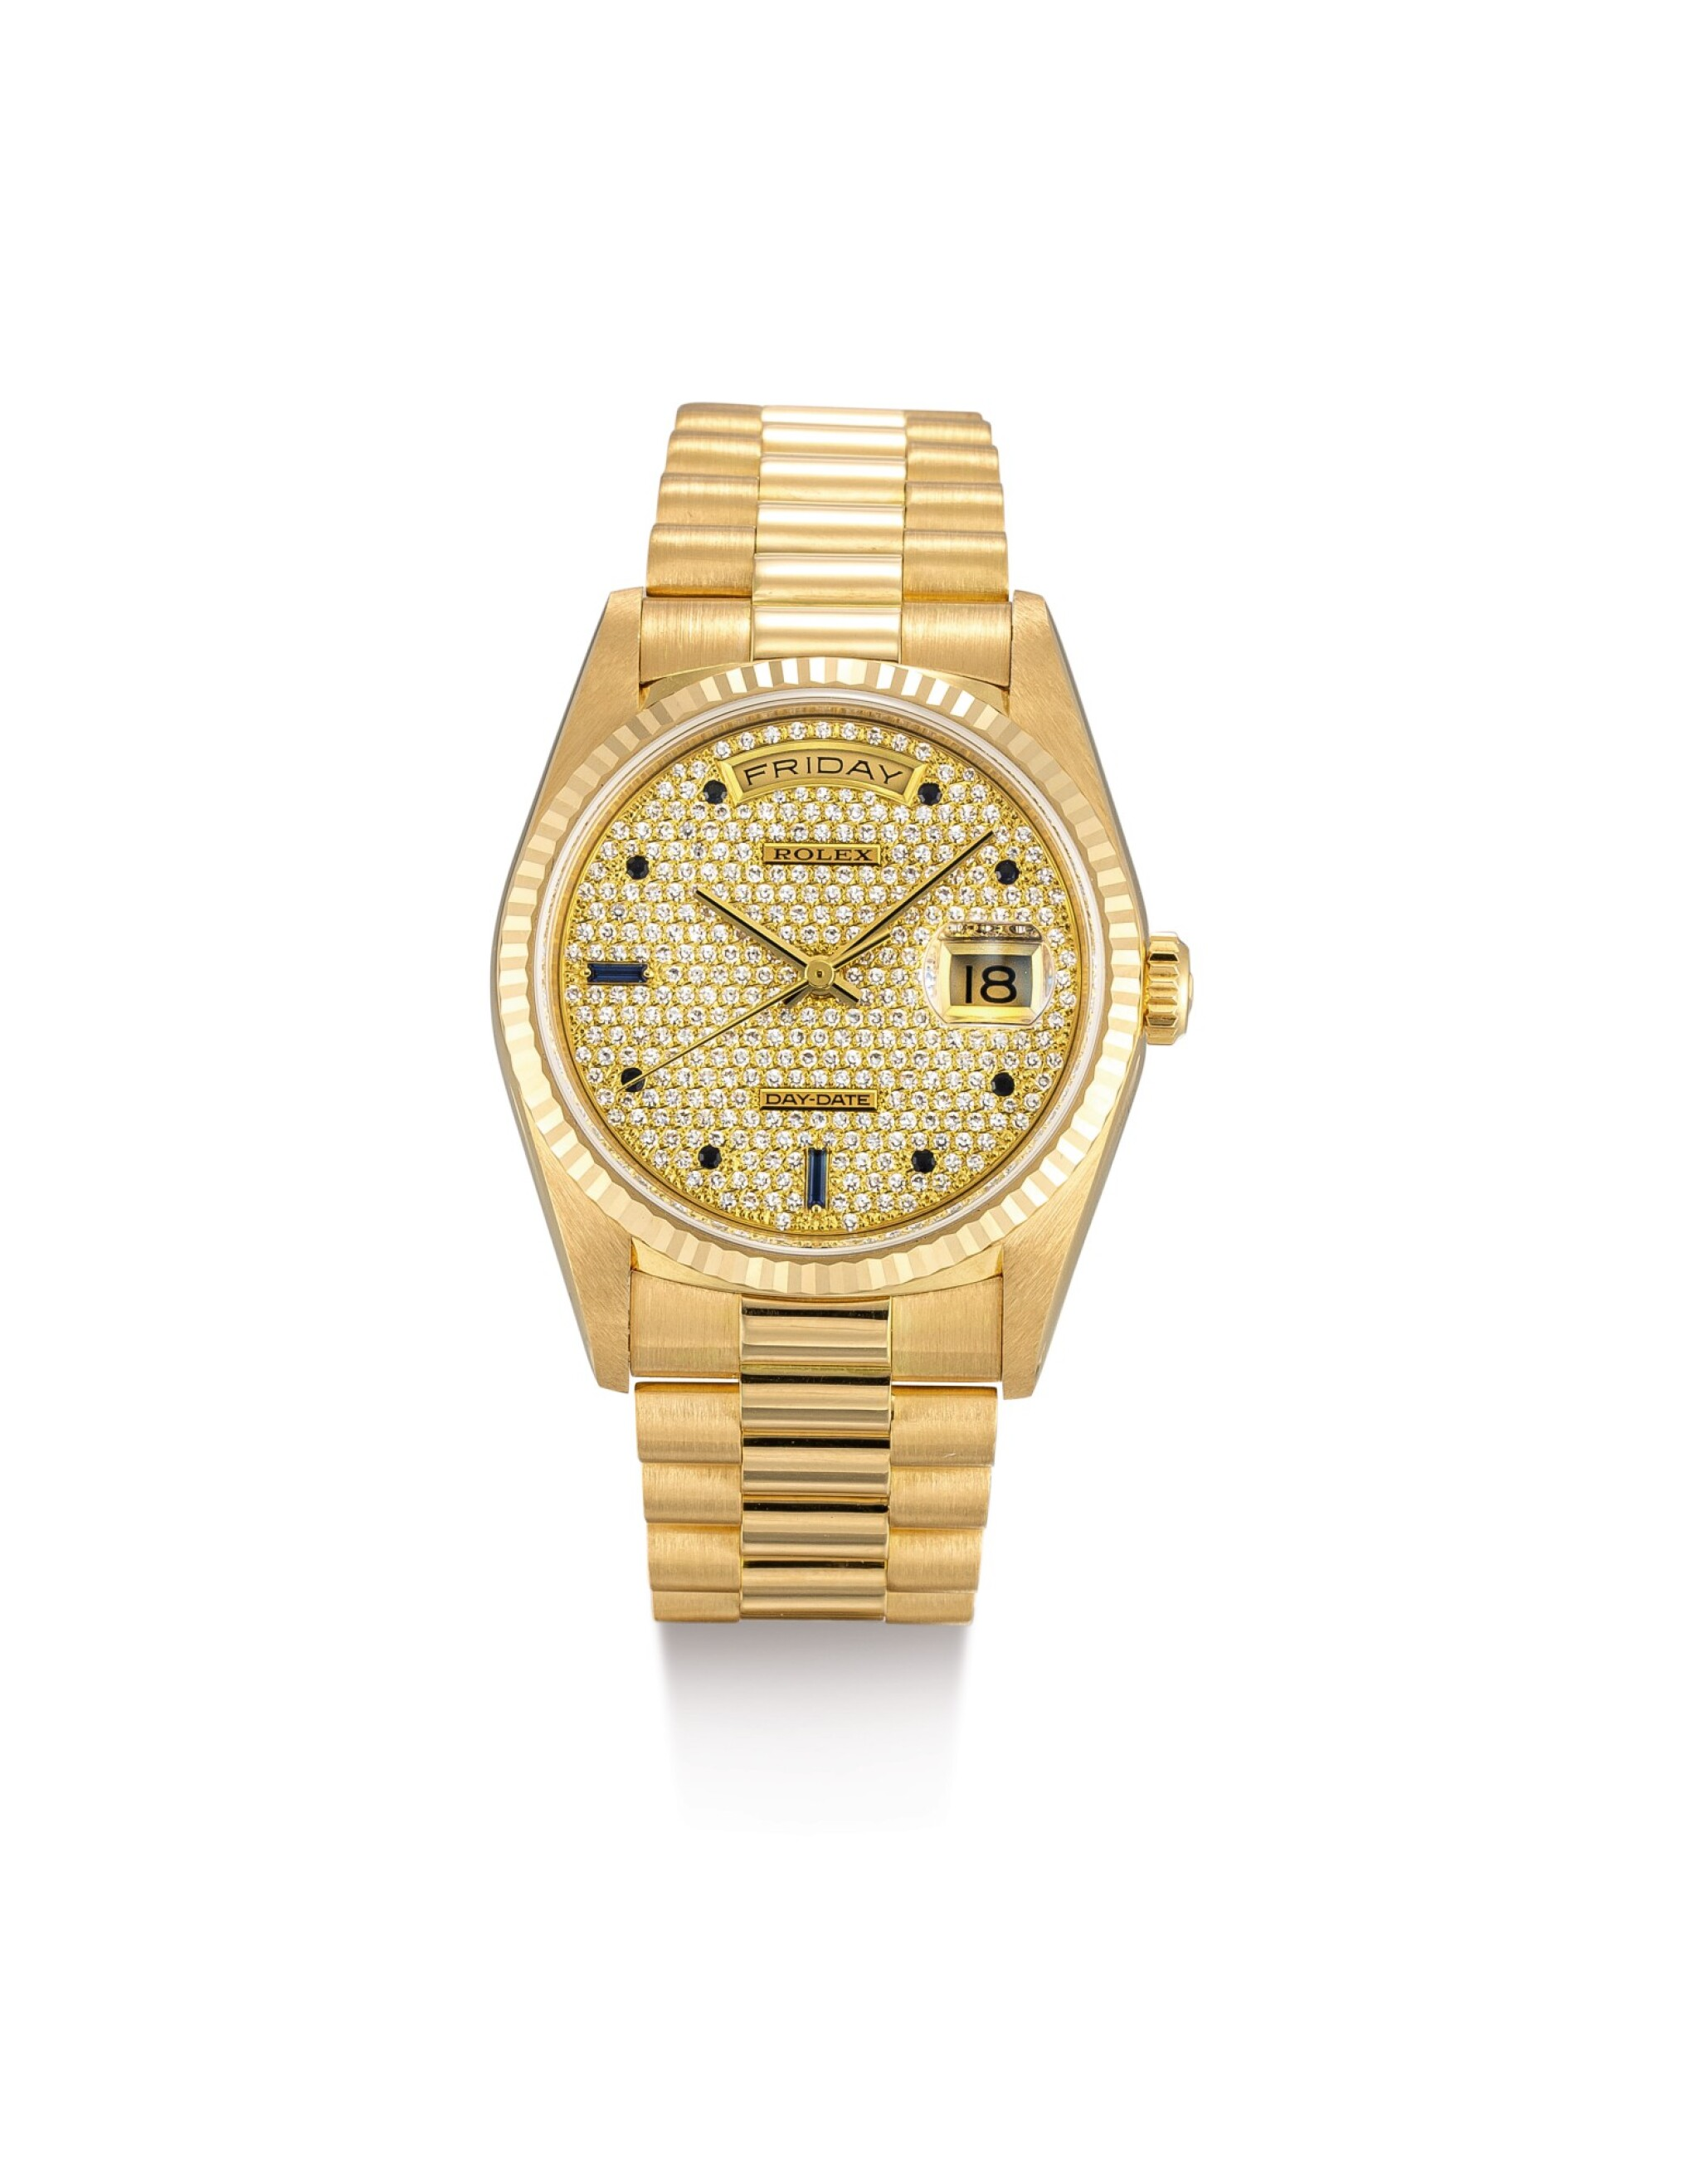 "View 1 of Lot 2109. ROLEX | DAY-DATE, REFERENCE 18238, A YELLOW GOLD, DIAMOND AND SAPPHIRE-SET WRISTWATCH WITH DAY, DATE AND BRACELET, CIRCA 1991 | 勞力士 | ""Day-Date 型號18238 黃金鑲鑽石及藍寶石鏈帶腕錶,備日期及星期顯示,機芯編號X629862,約1991年製""."